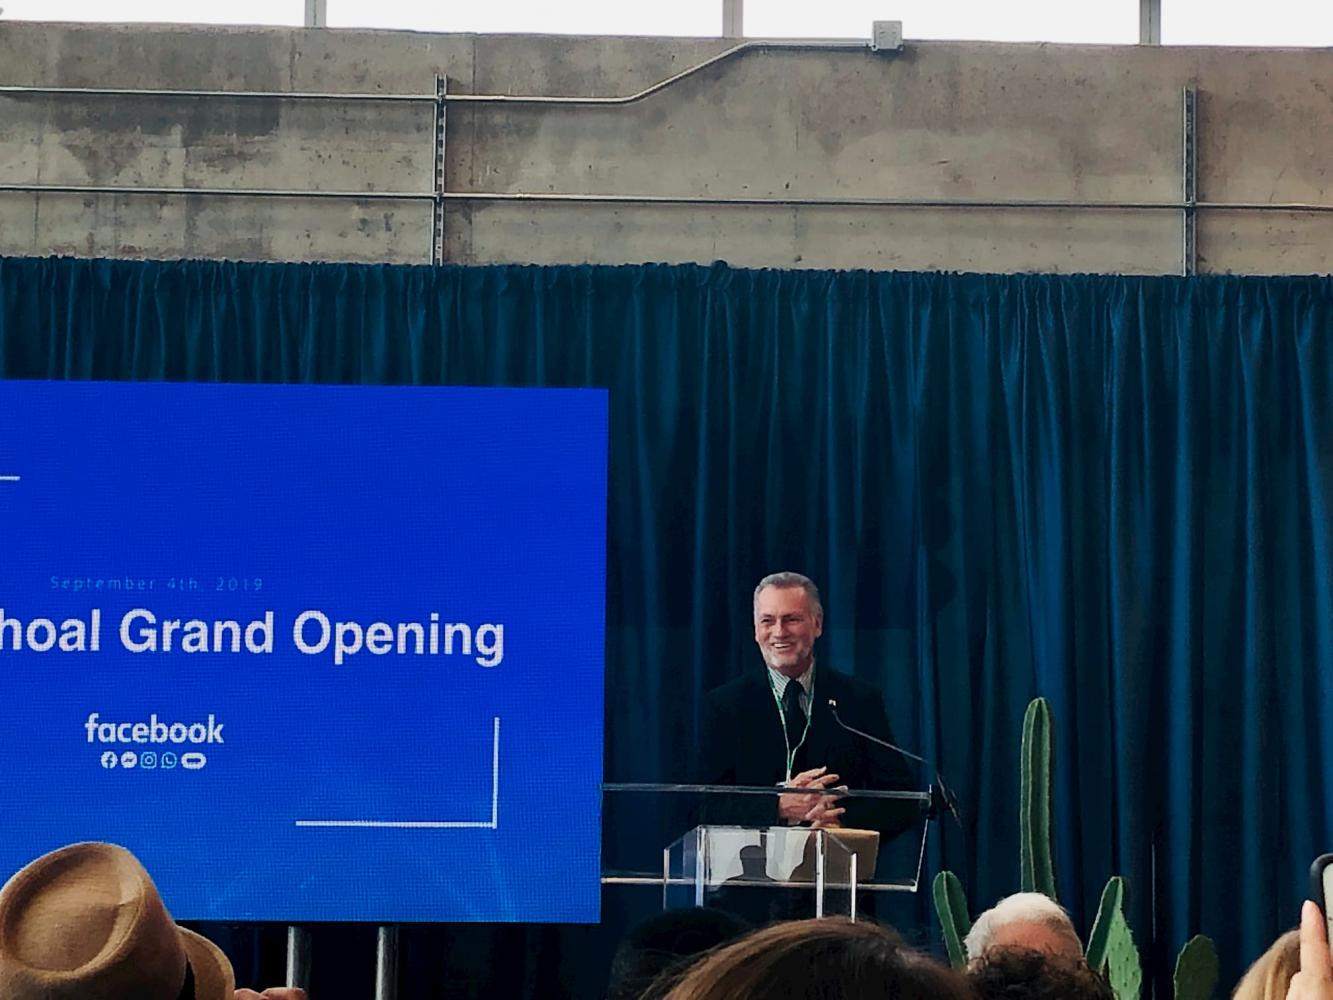 ACC and Facebook partnership announcement